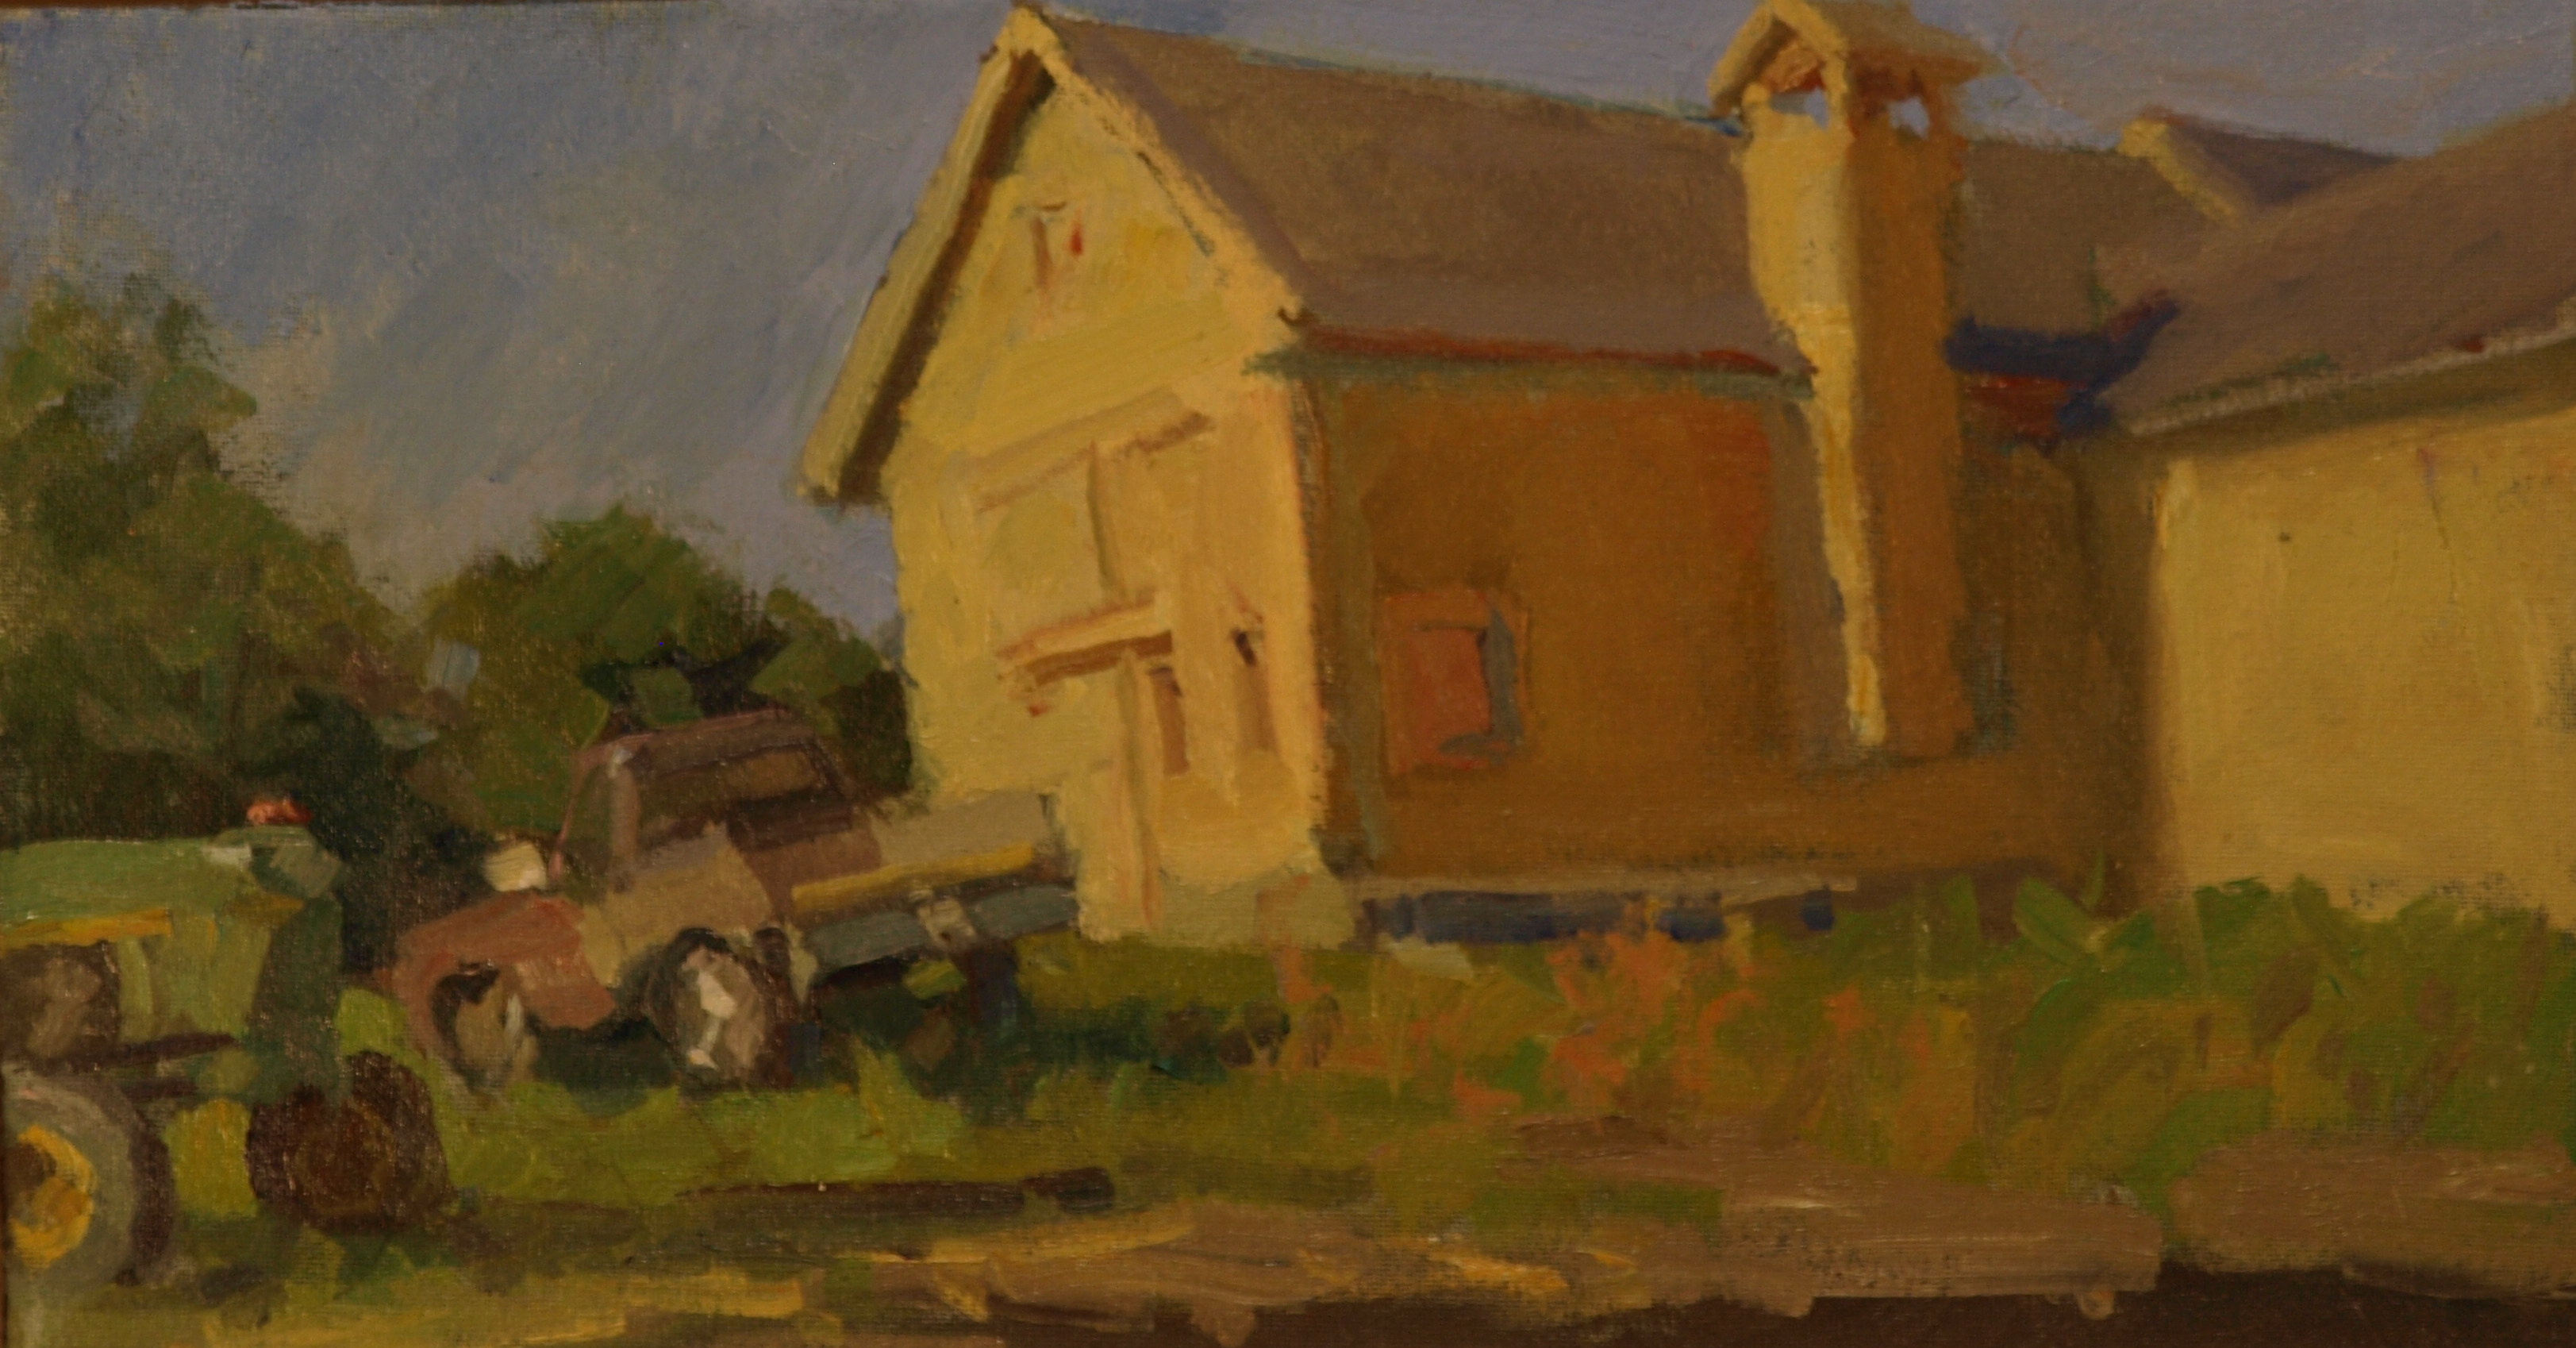 Barn Truck and Tractor, Oil on Canvas on Panel, 9 x 16 Inches, by Susan Grisell, $300